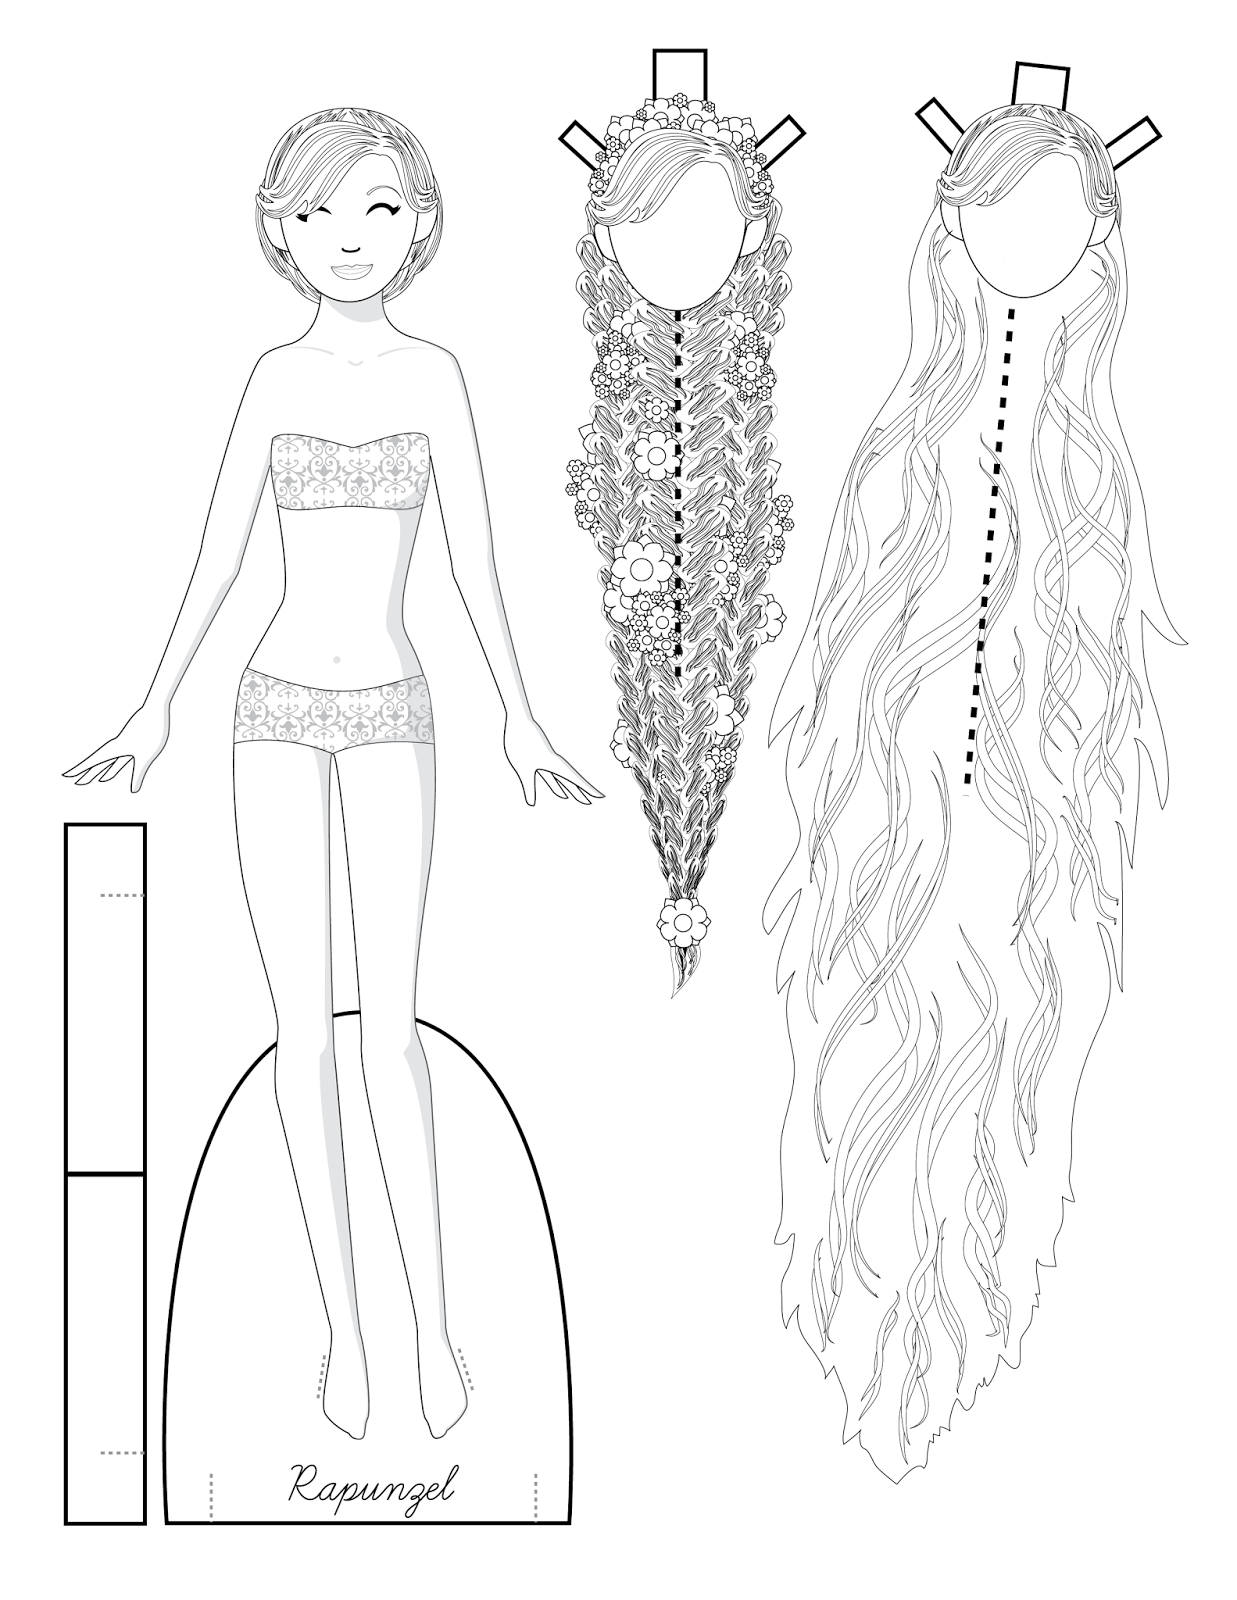 Paper Doll School: Fairy Tale Fashions to Color